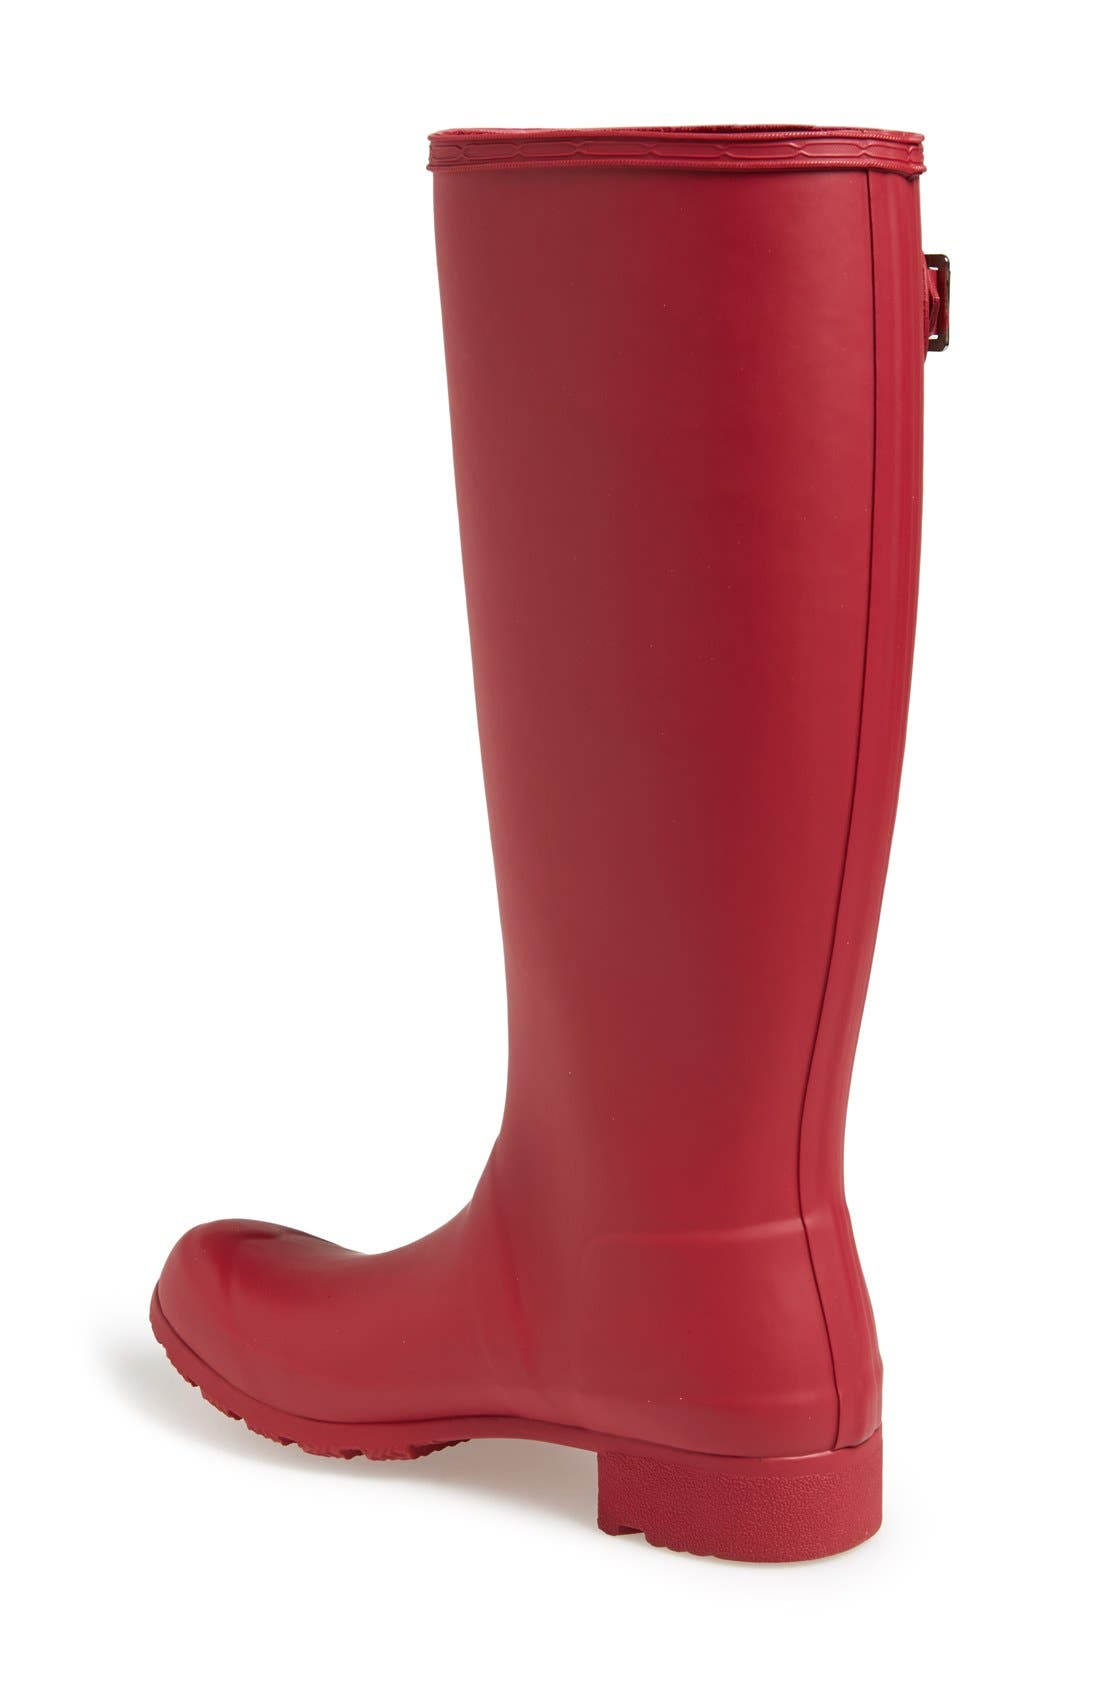 'Tour' Packable Rain Boot,                             Alternate thumbnail 94, color,